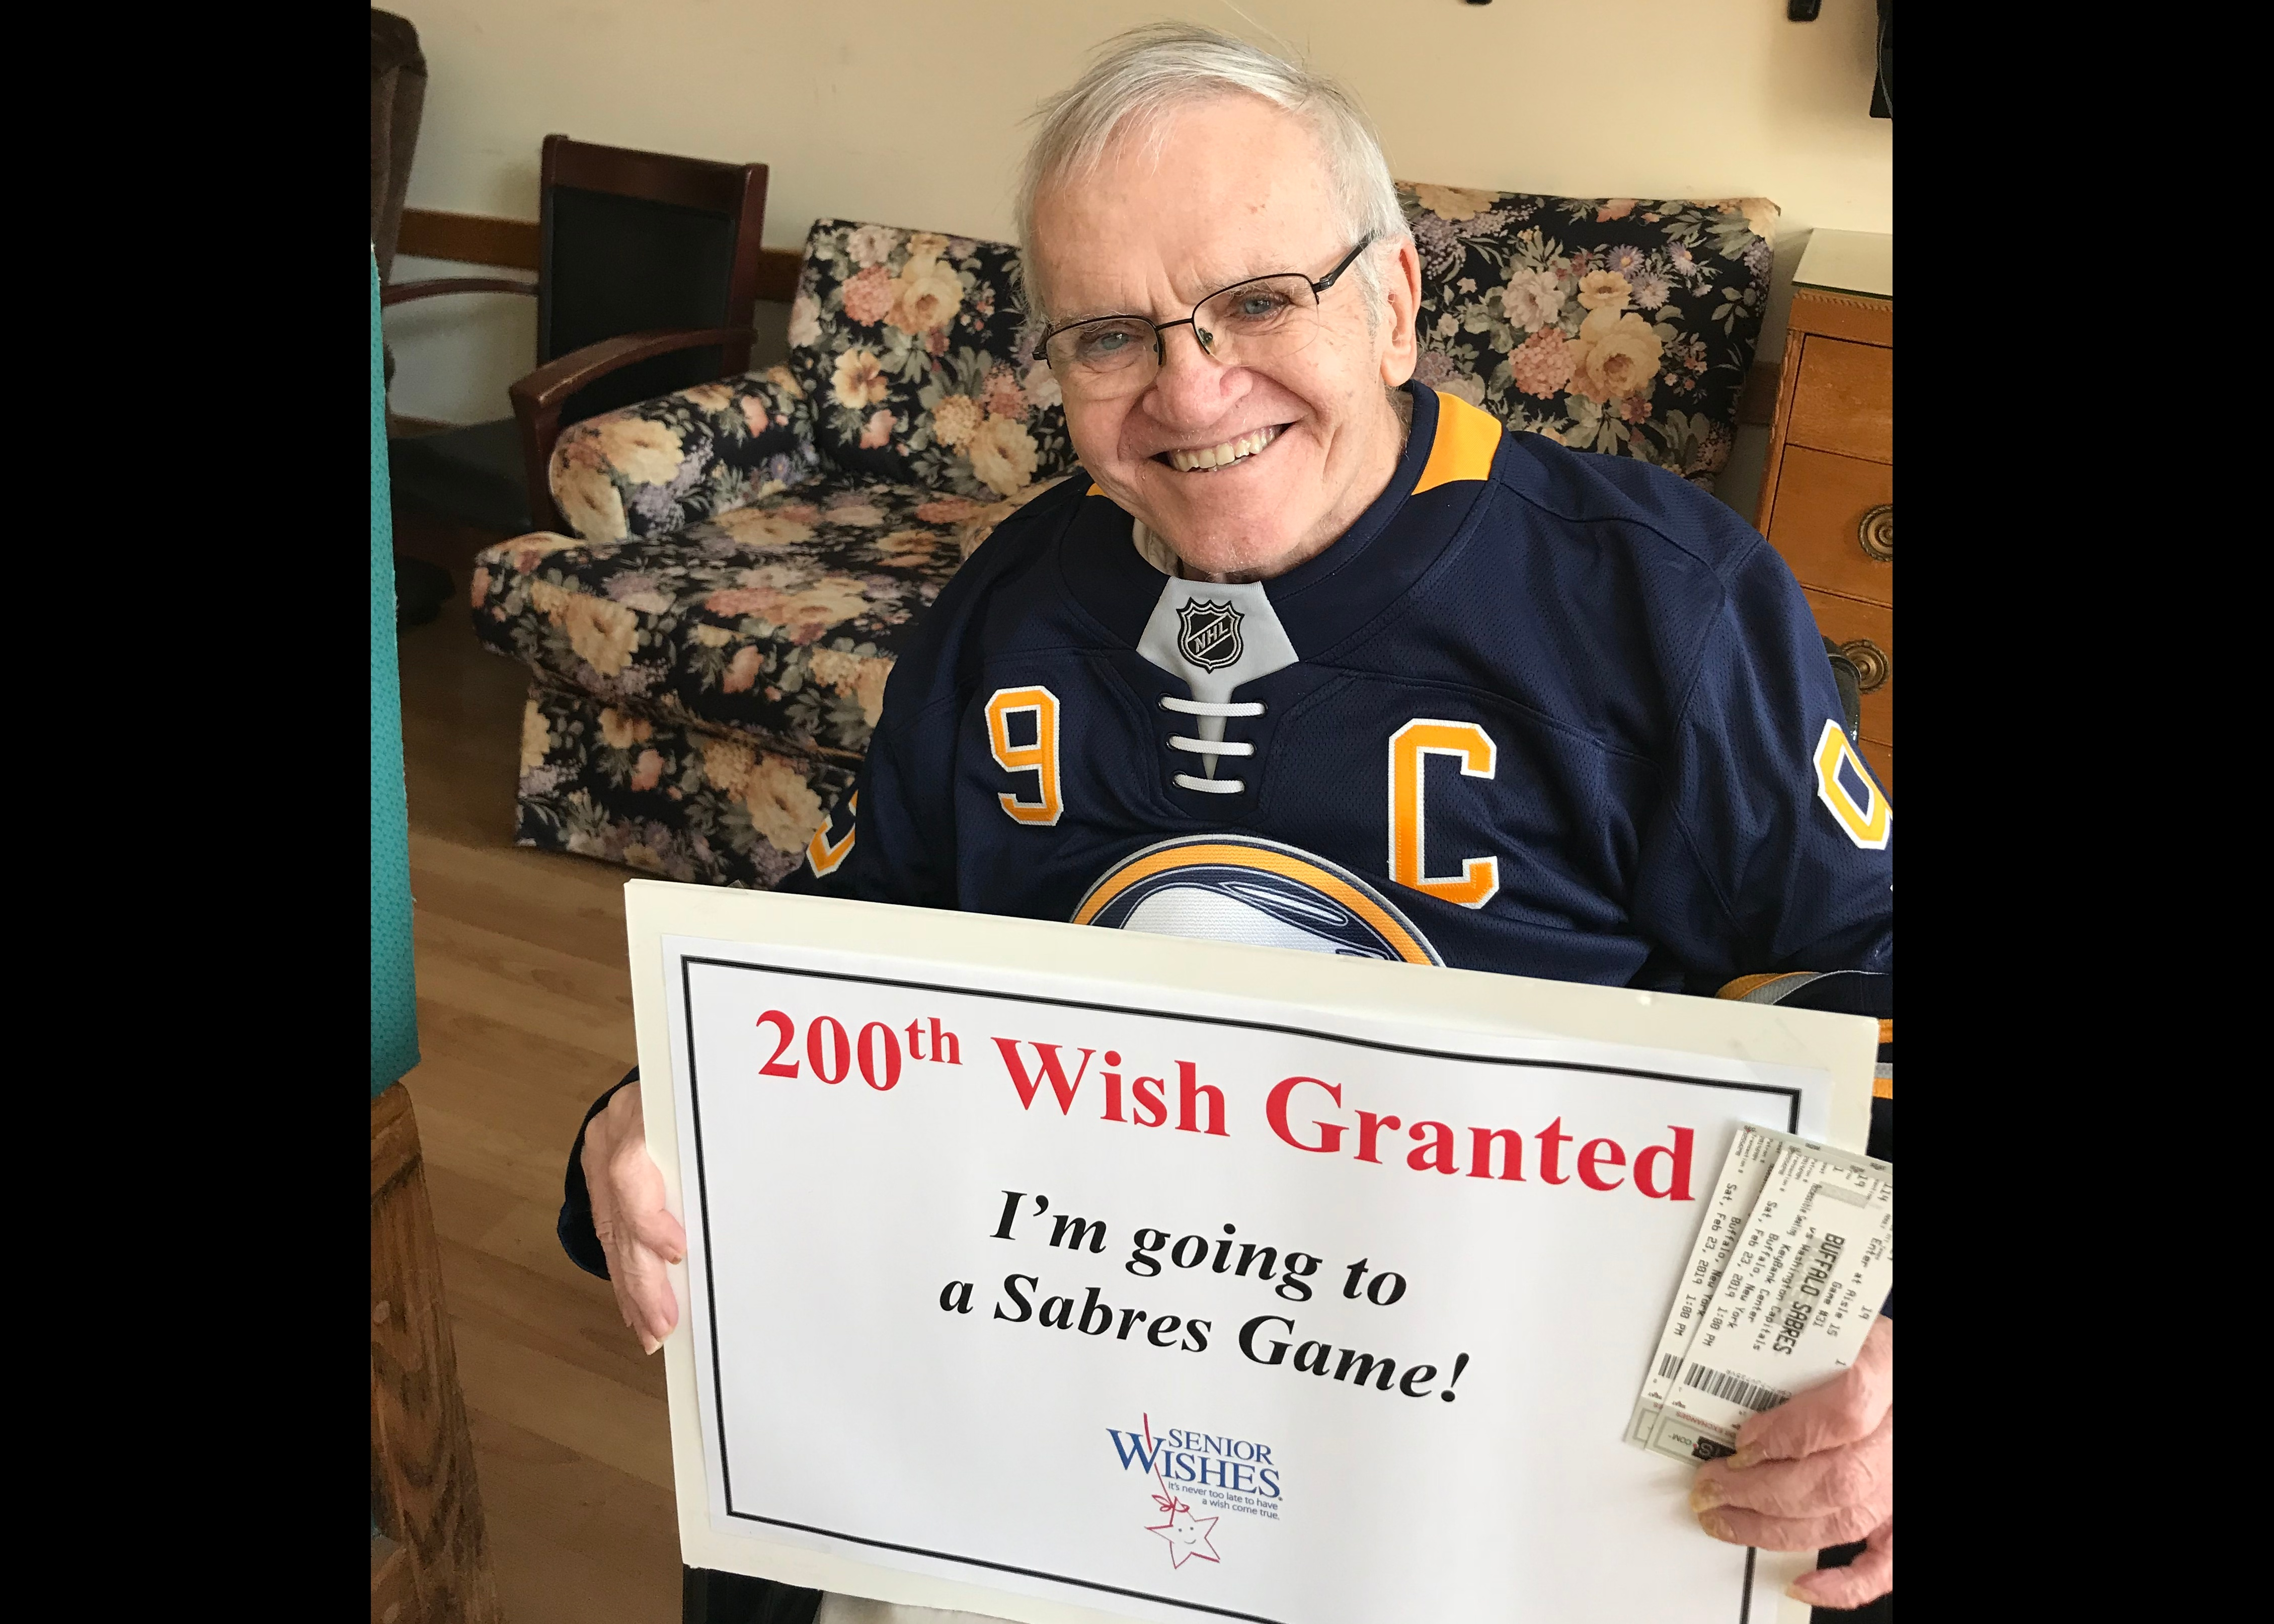 Our 200th Wish!  A Wish to go to a Sabres game Image